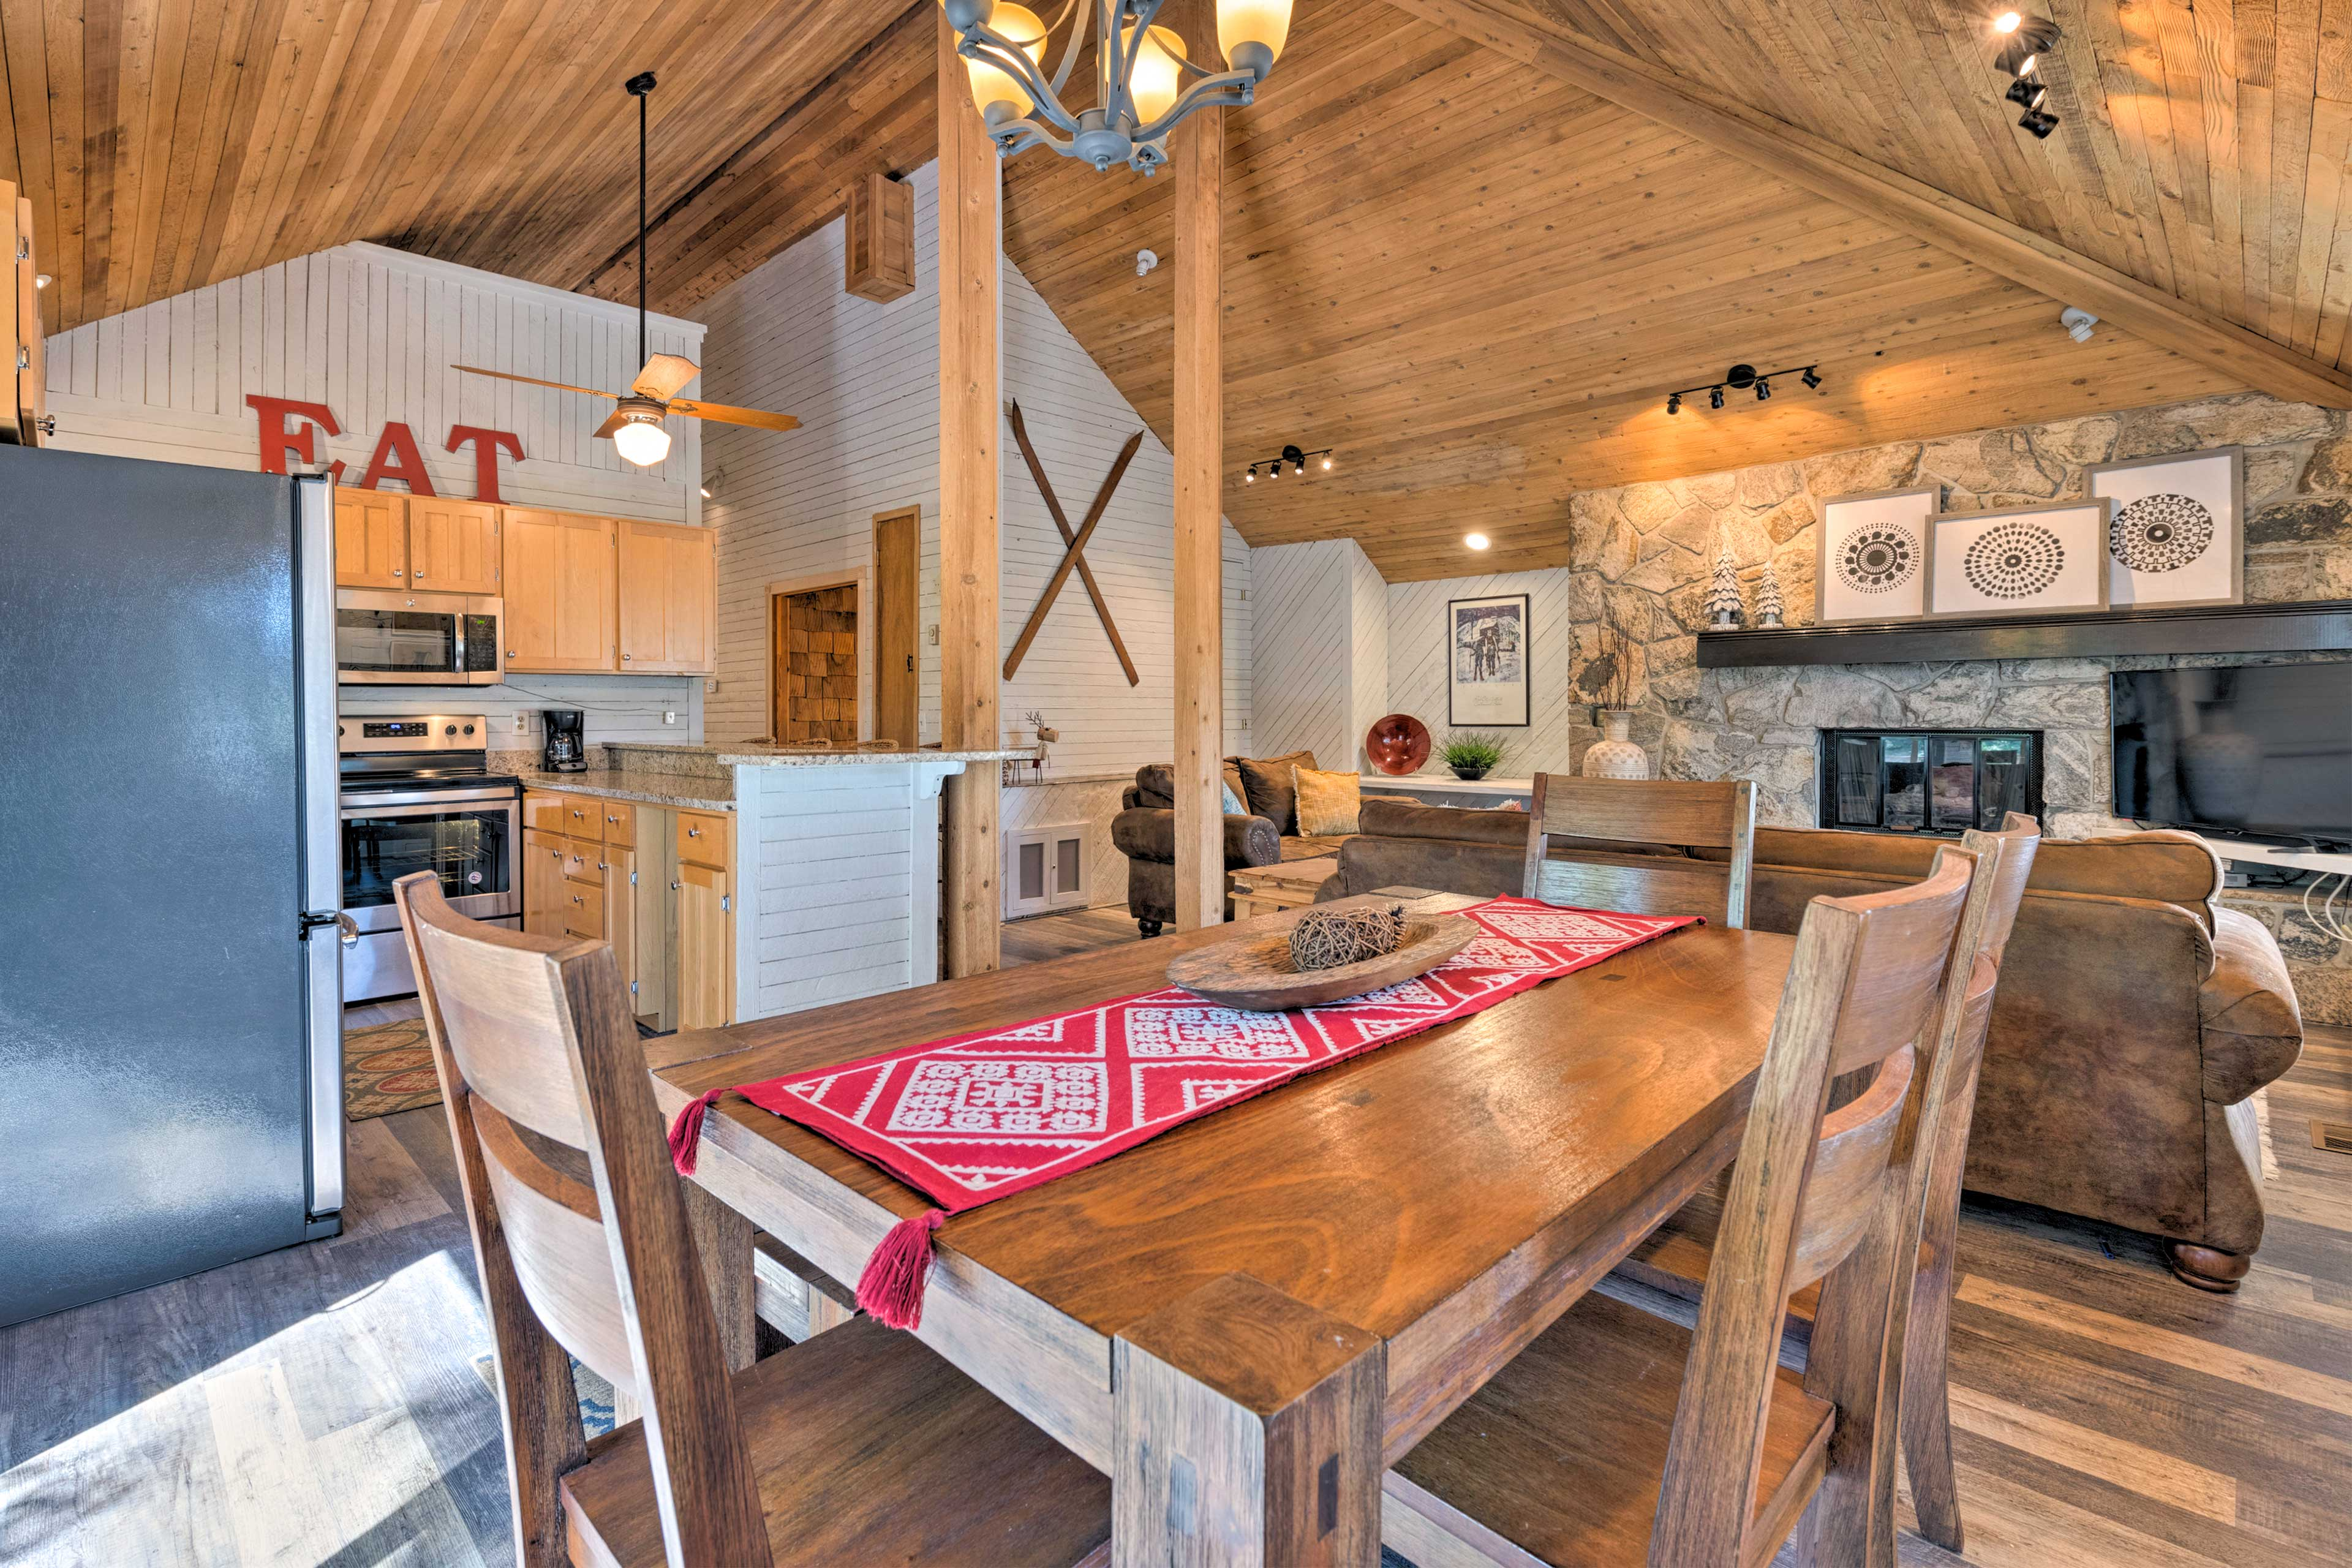 Admire the vaulted wood ceilings that soar above in the main living space.